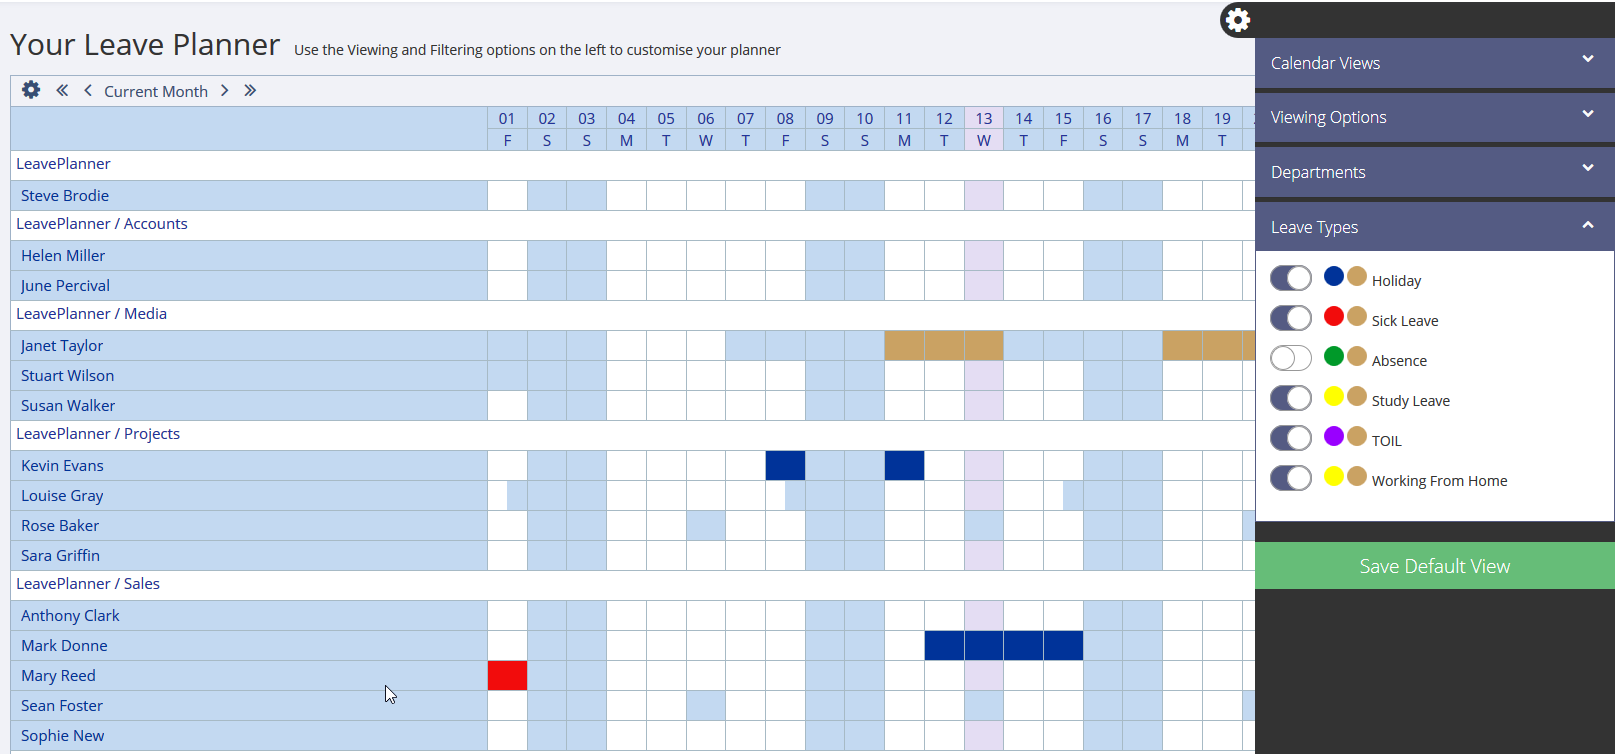 Absence leave types on the LeavePlanner Calendar in Grid View